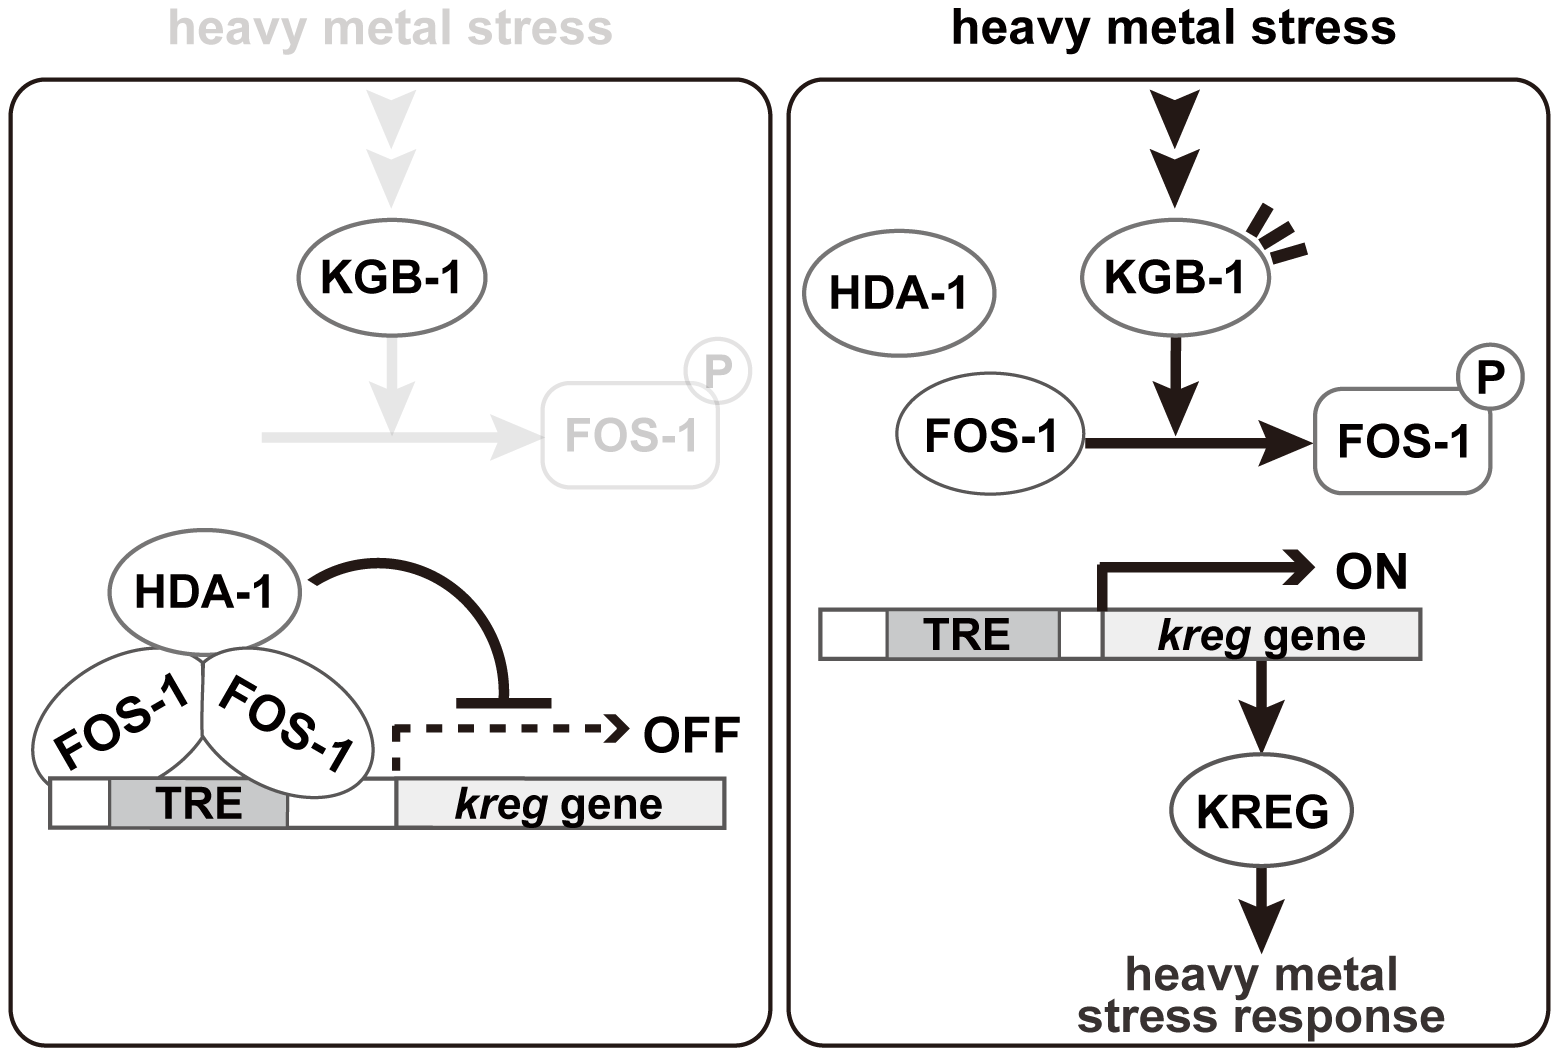 Proposed model for the KGB-1 pathway in stress response.